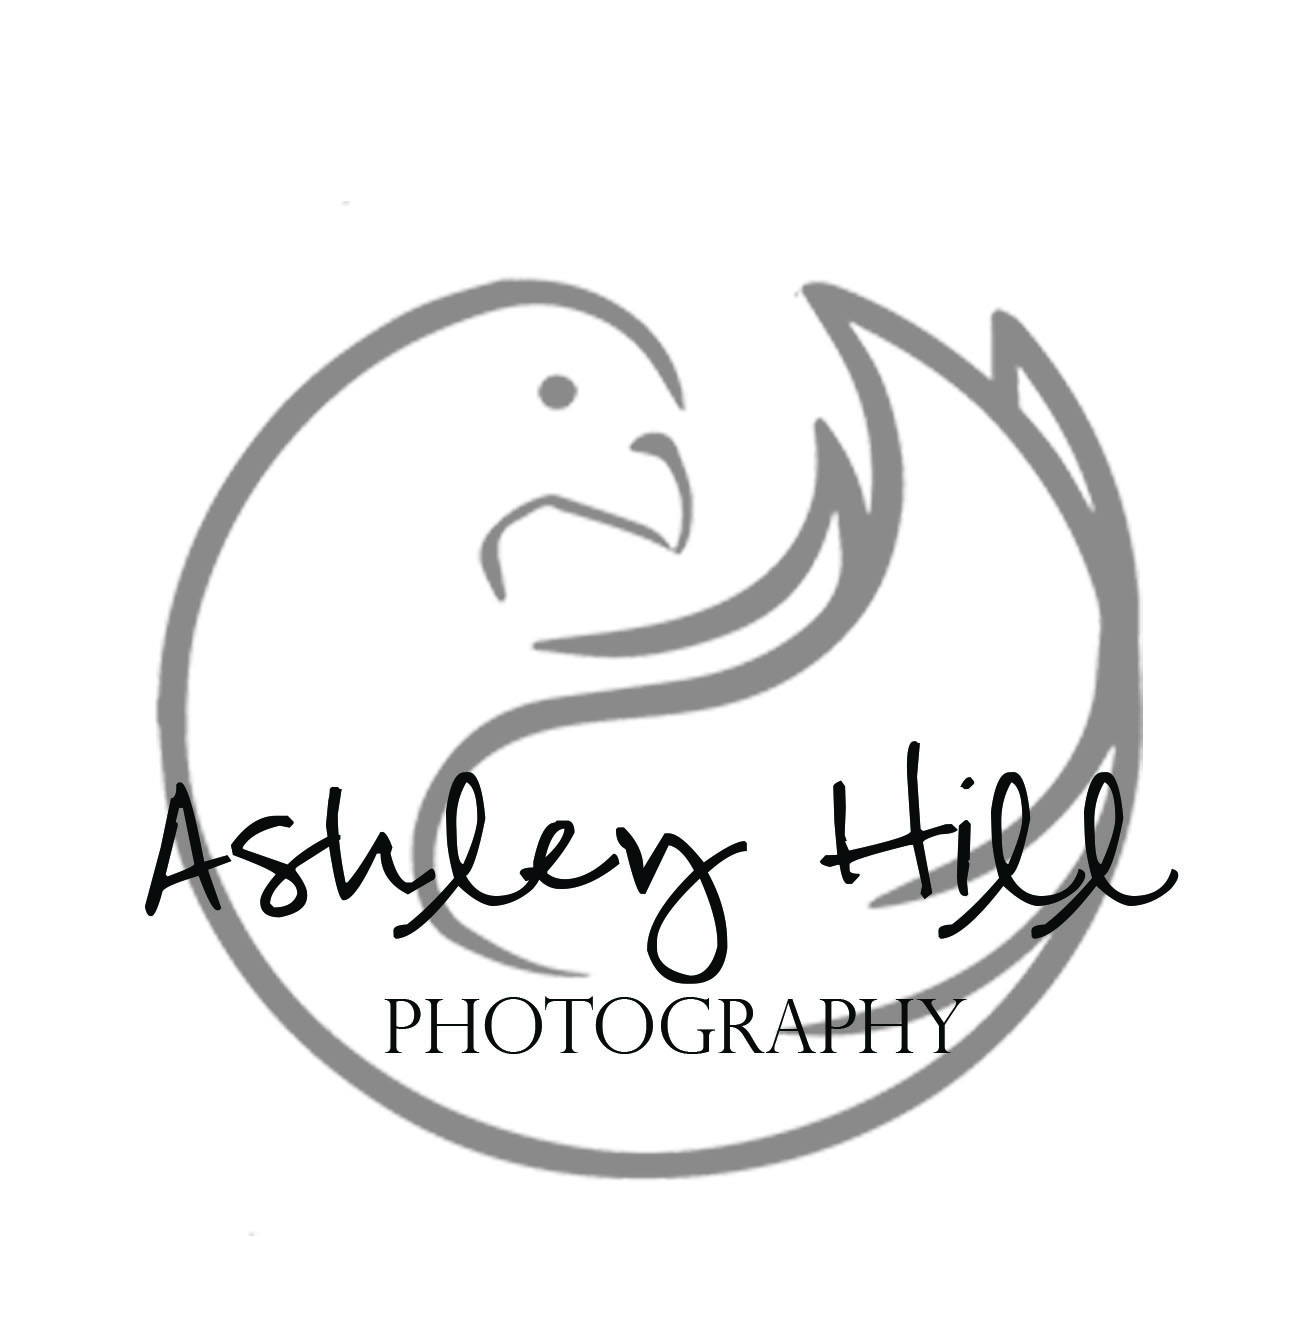 Ashley Hill Photography